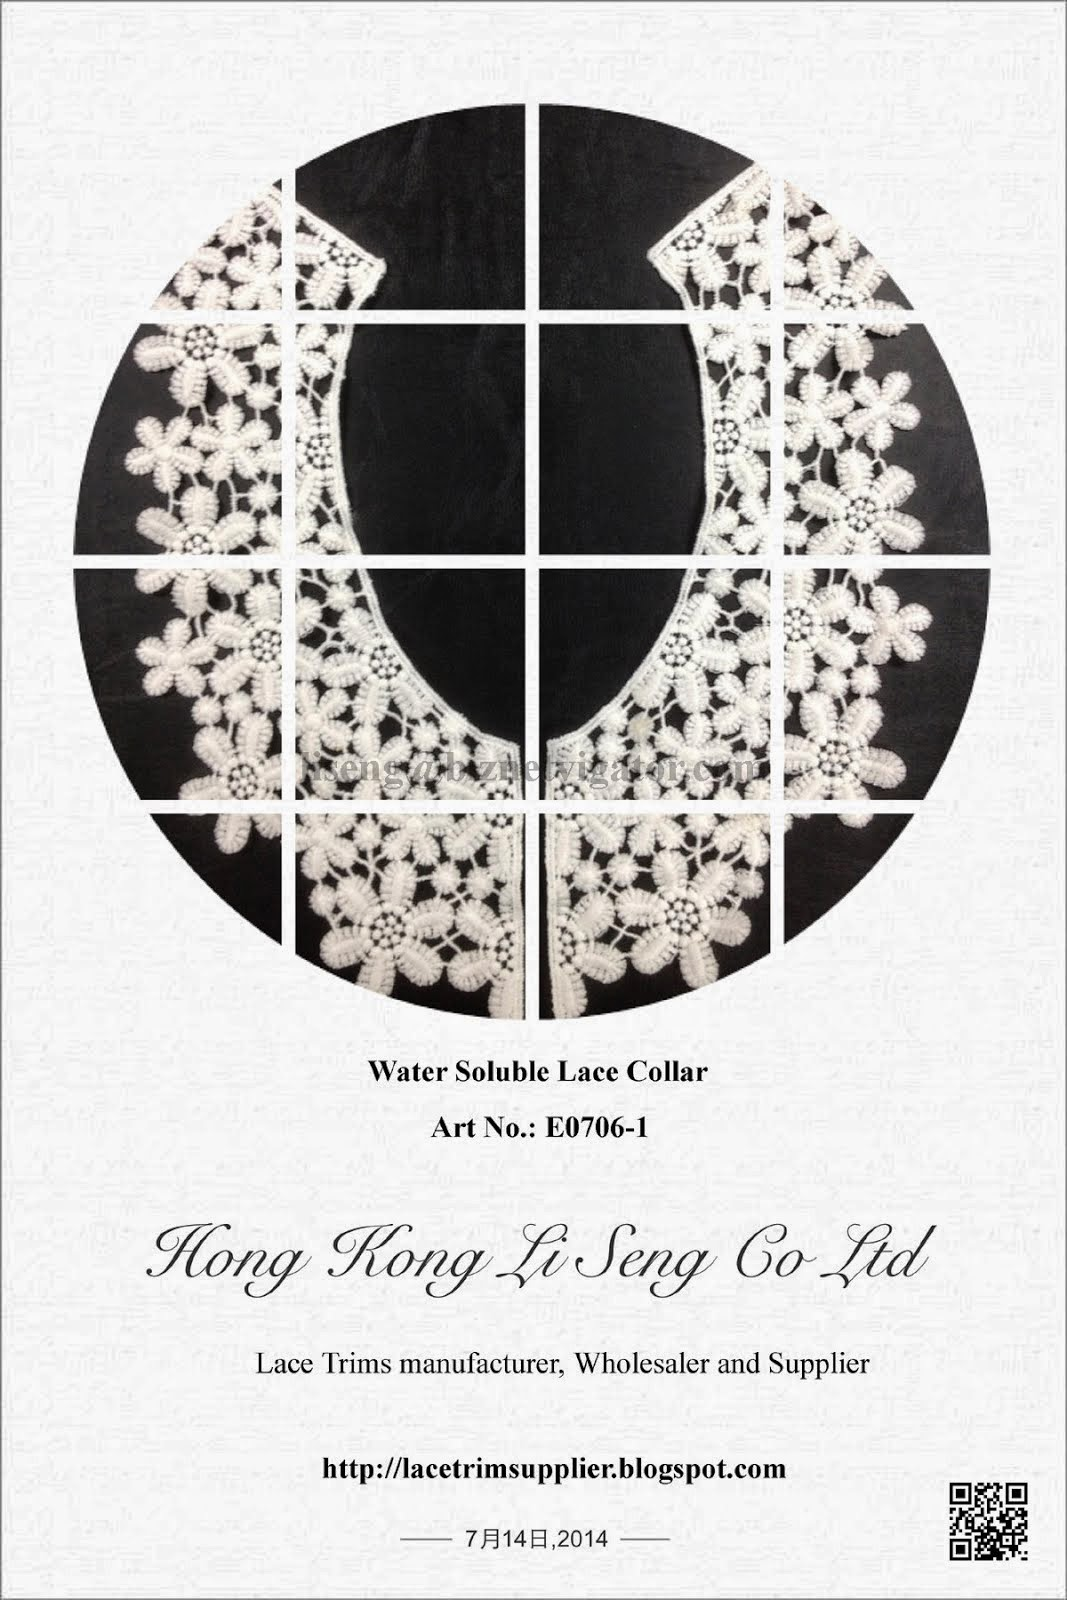 "New Embroidered Cotton Lace Collar Manufacturer Wholesaler  Supplier "" Hong Kong Li Seng Co Ltd """